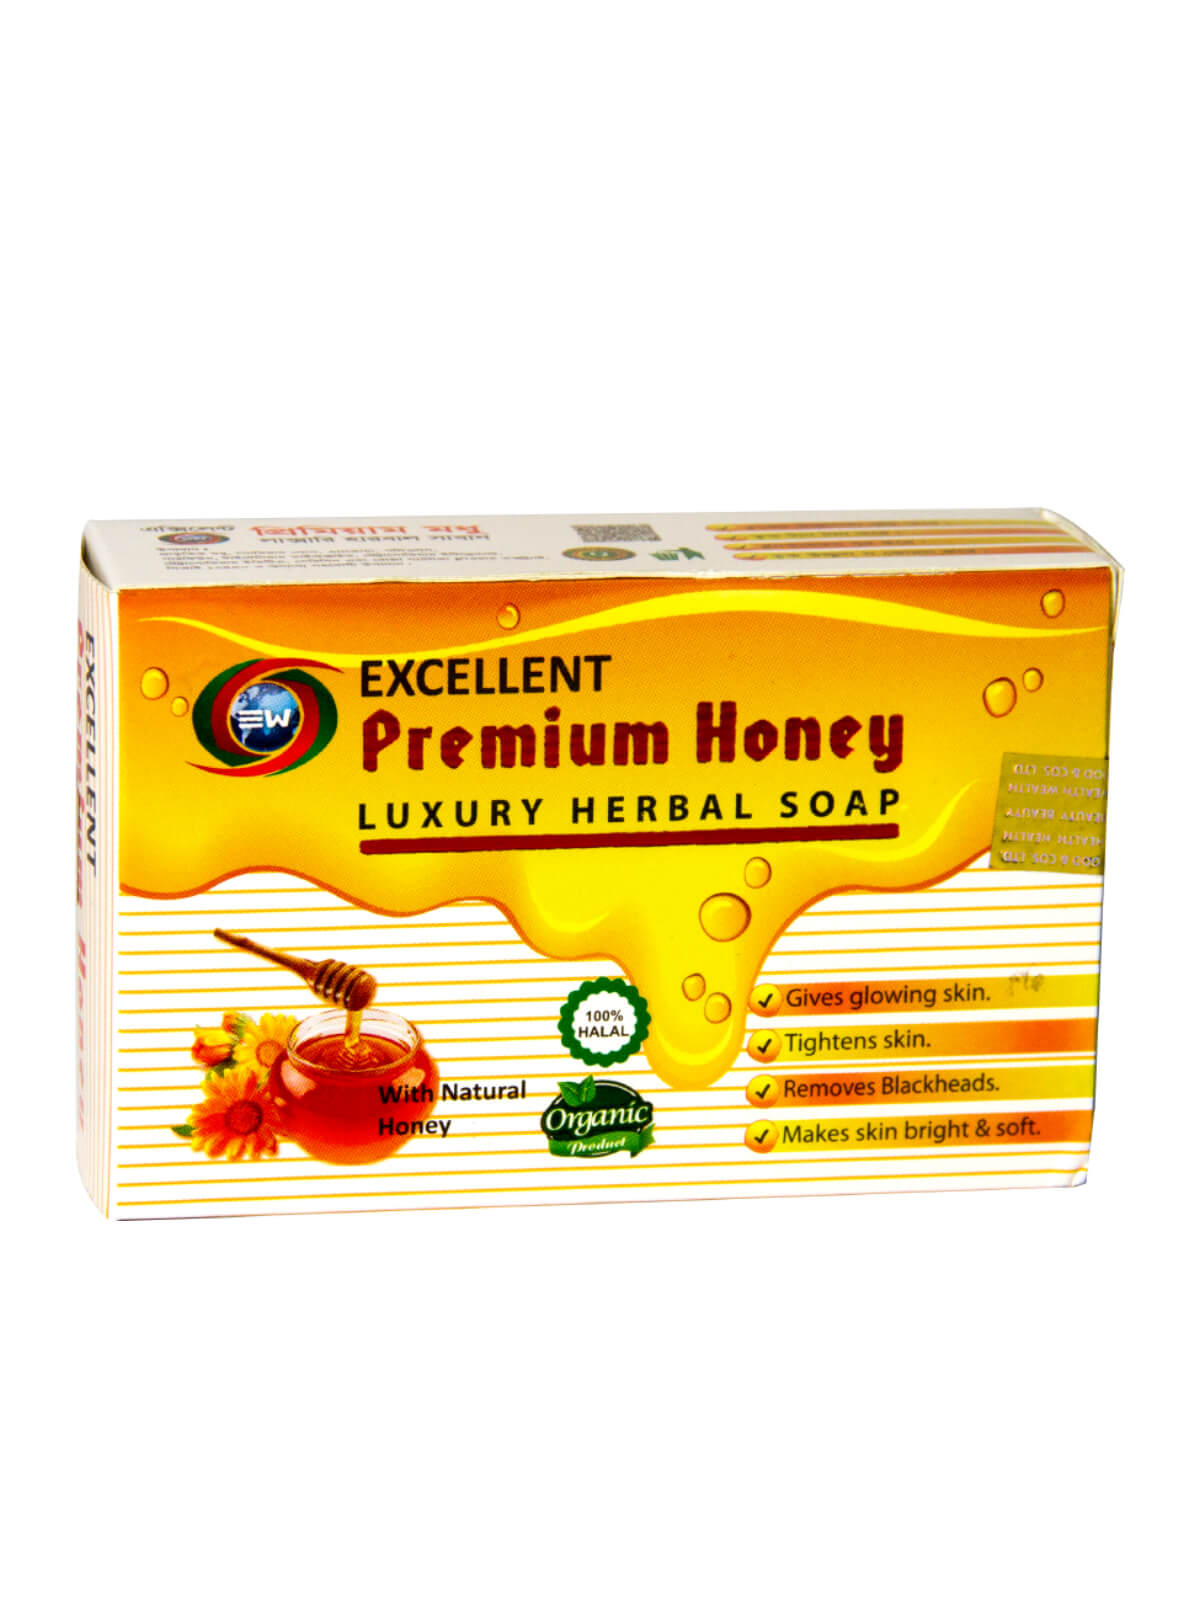 Premium Honey Luxury Herbal Soap